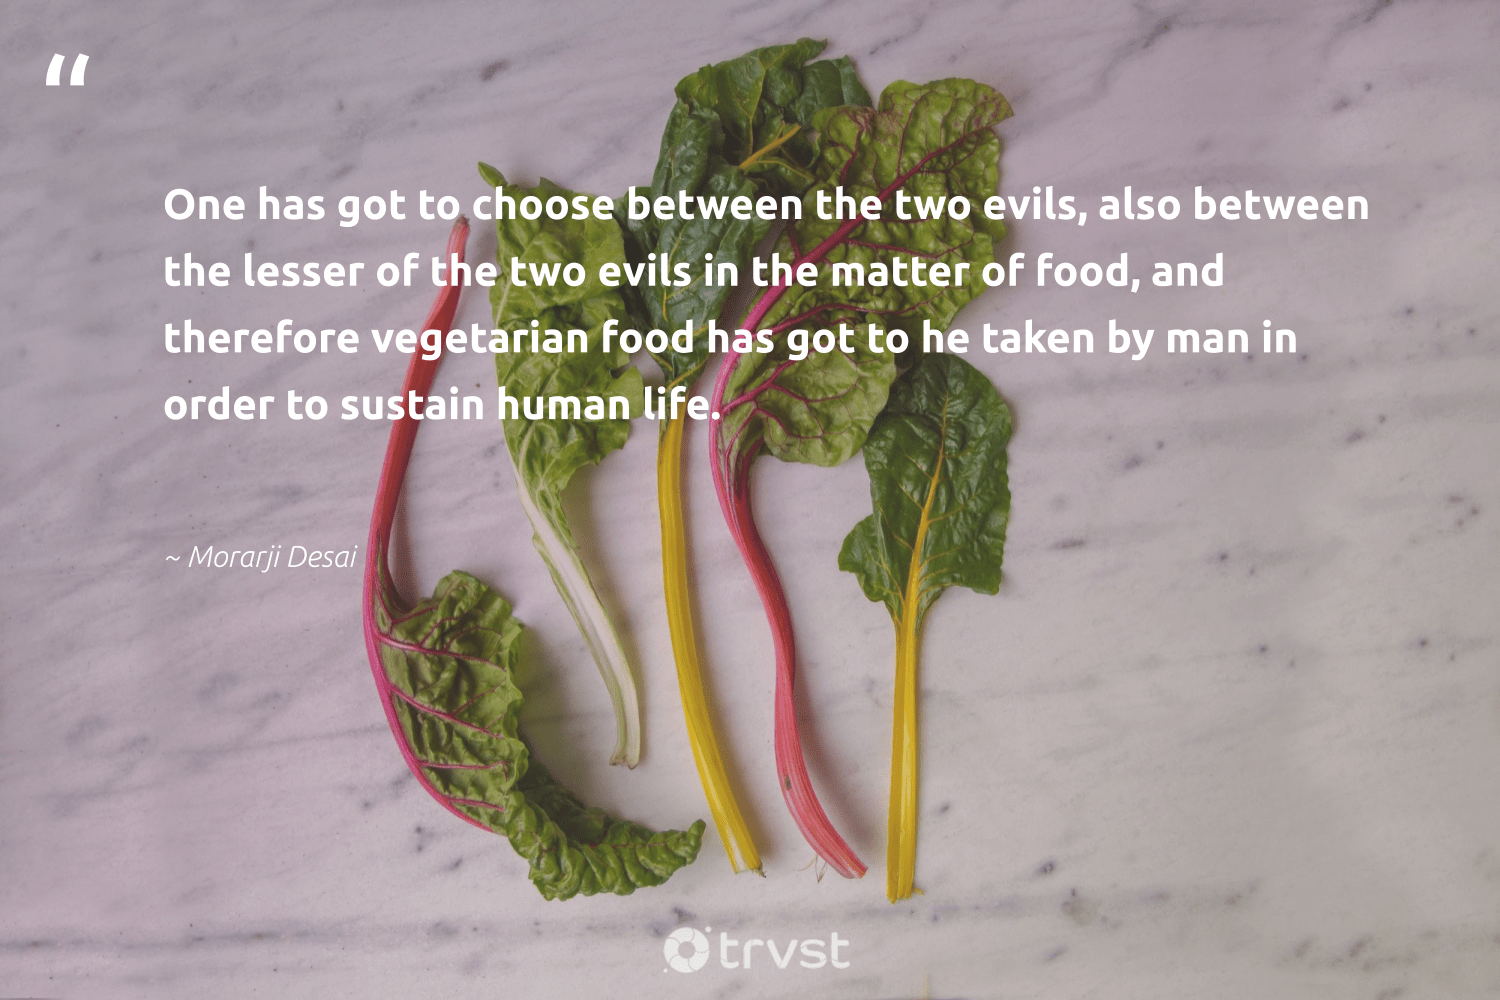 """""""One has got to choose between the two evils, also between the lesser of the two evils in the matter of food, and therefore vegetarian food has got to he taken by man in order to sustain human life.""""  - Morarji Desai #trvst #quotes #food #vegetarian #hunger #sustainable #makeadifference #takeaction #hungry #sustainability #inclusion #dogood"""